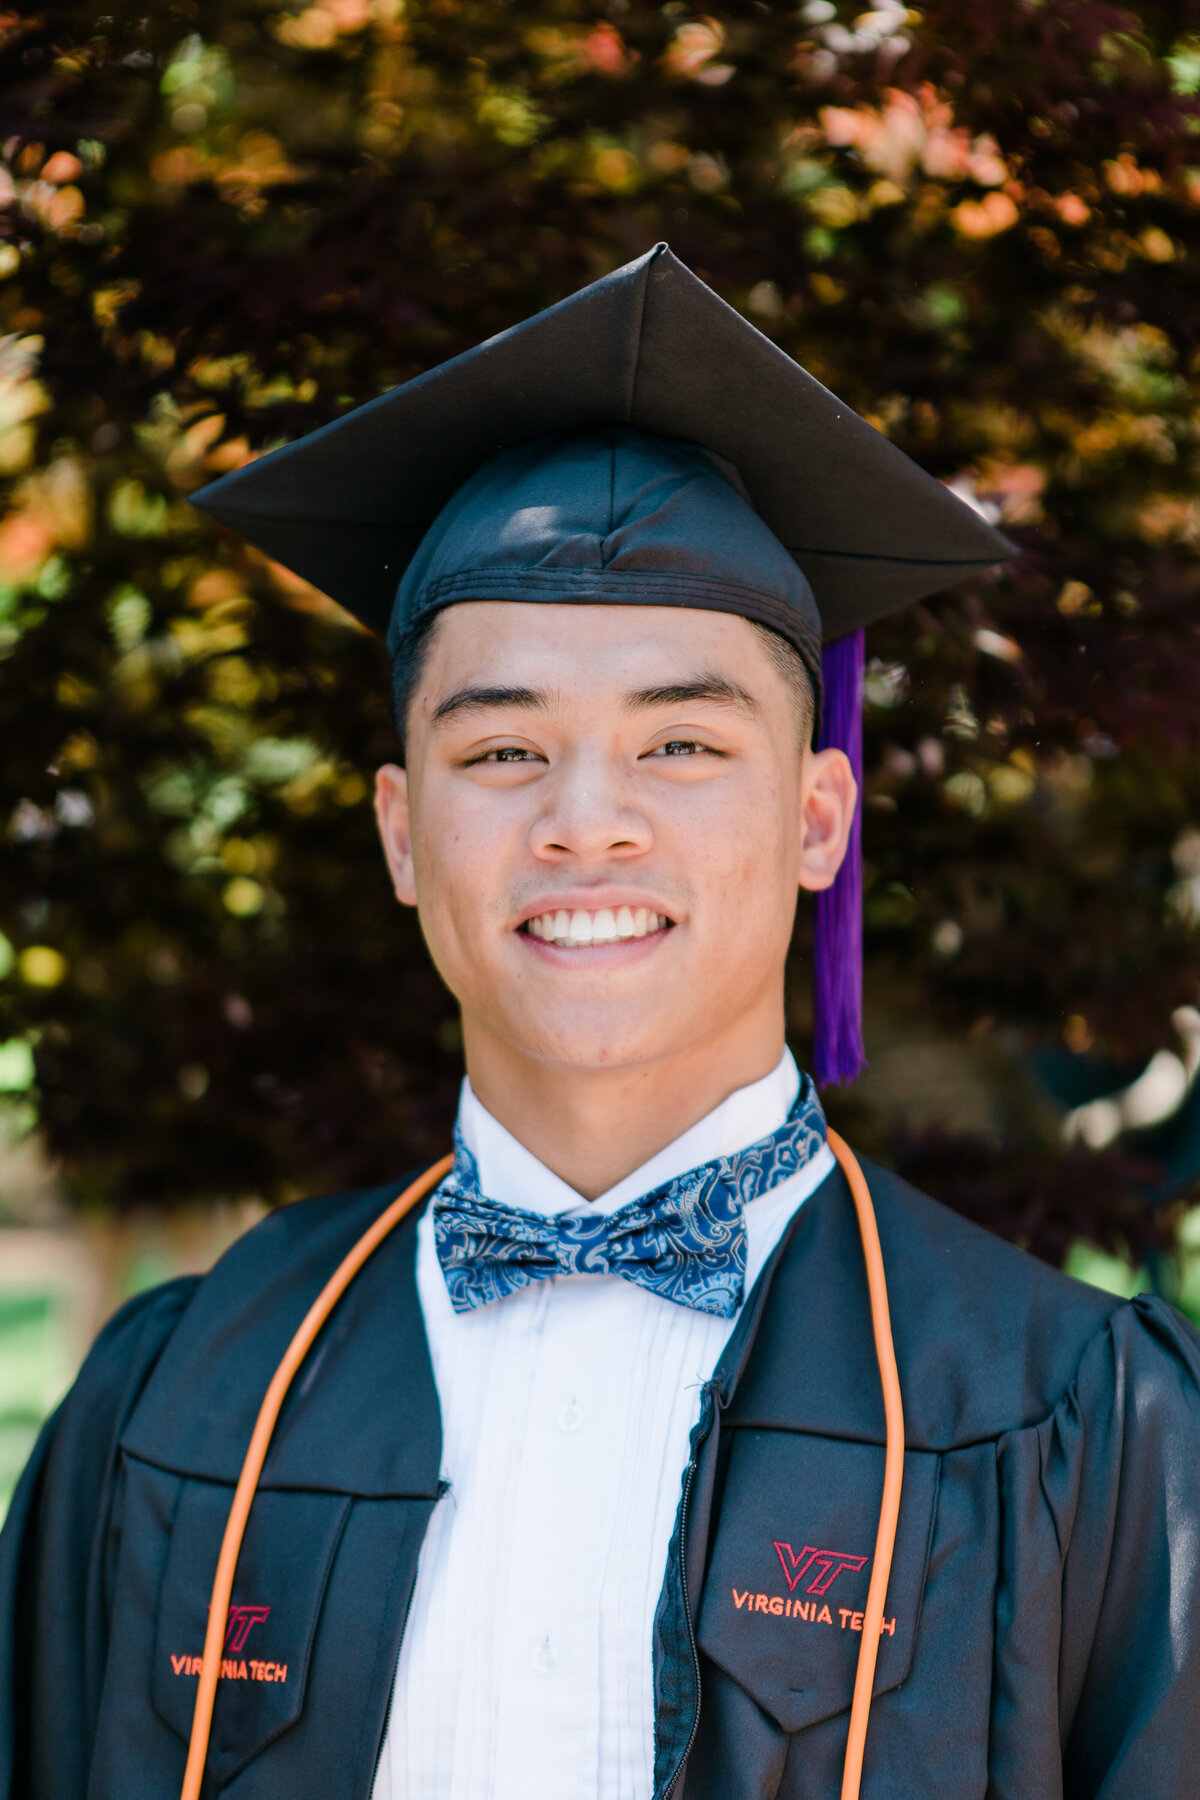 EricsVTGraduation2019_AngelikaJohnsPhotography-0226